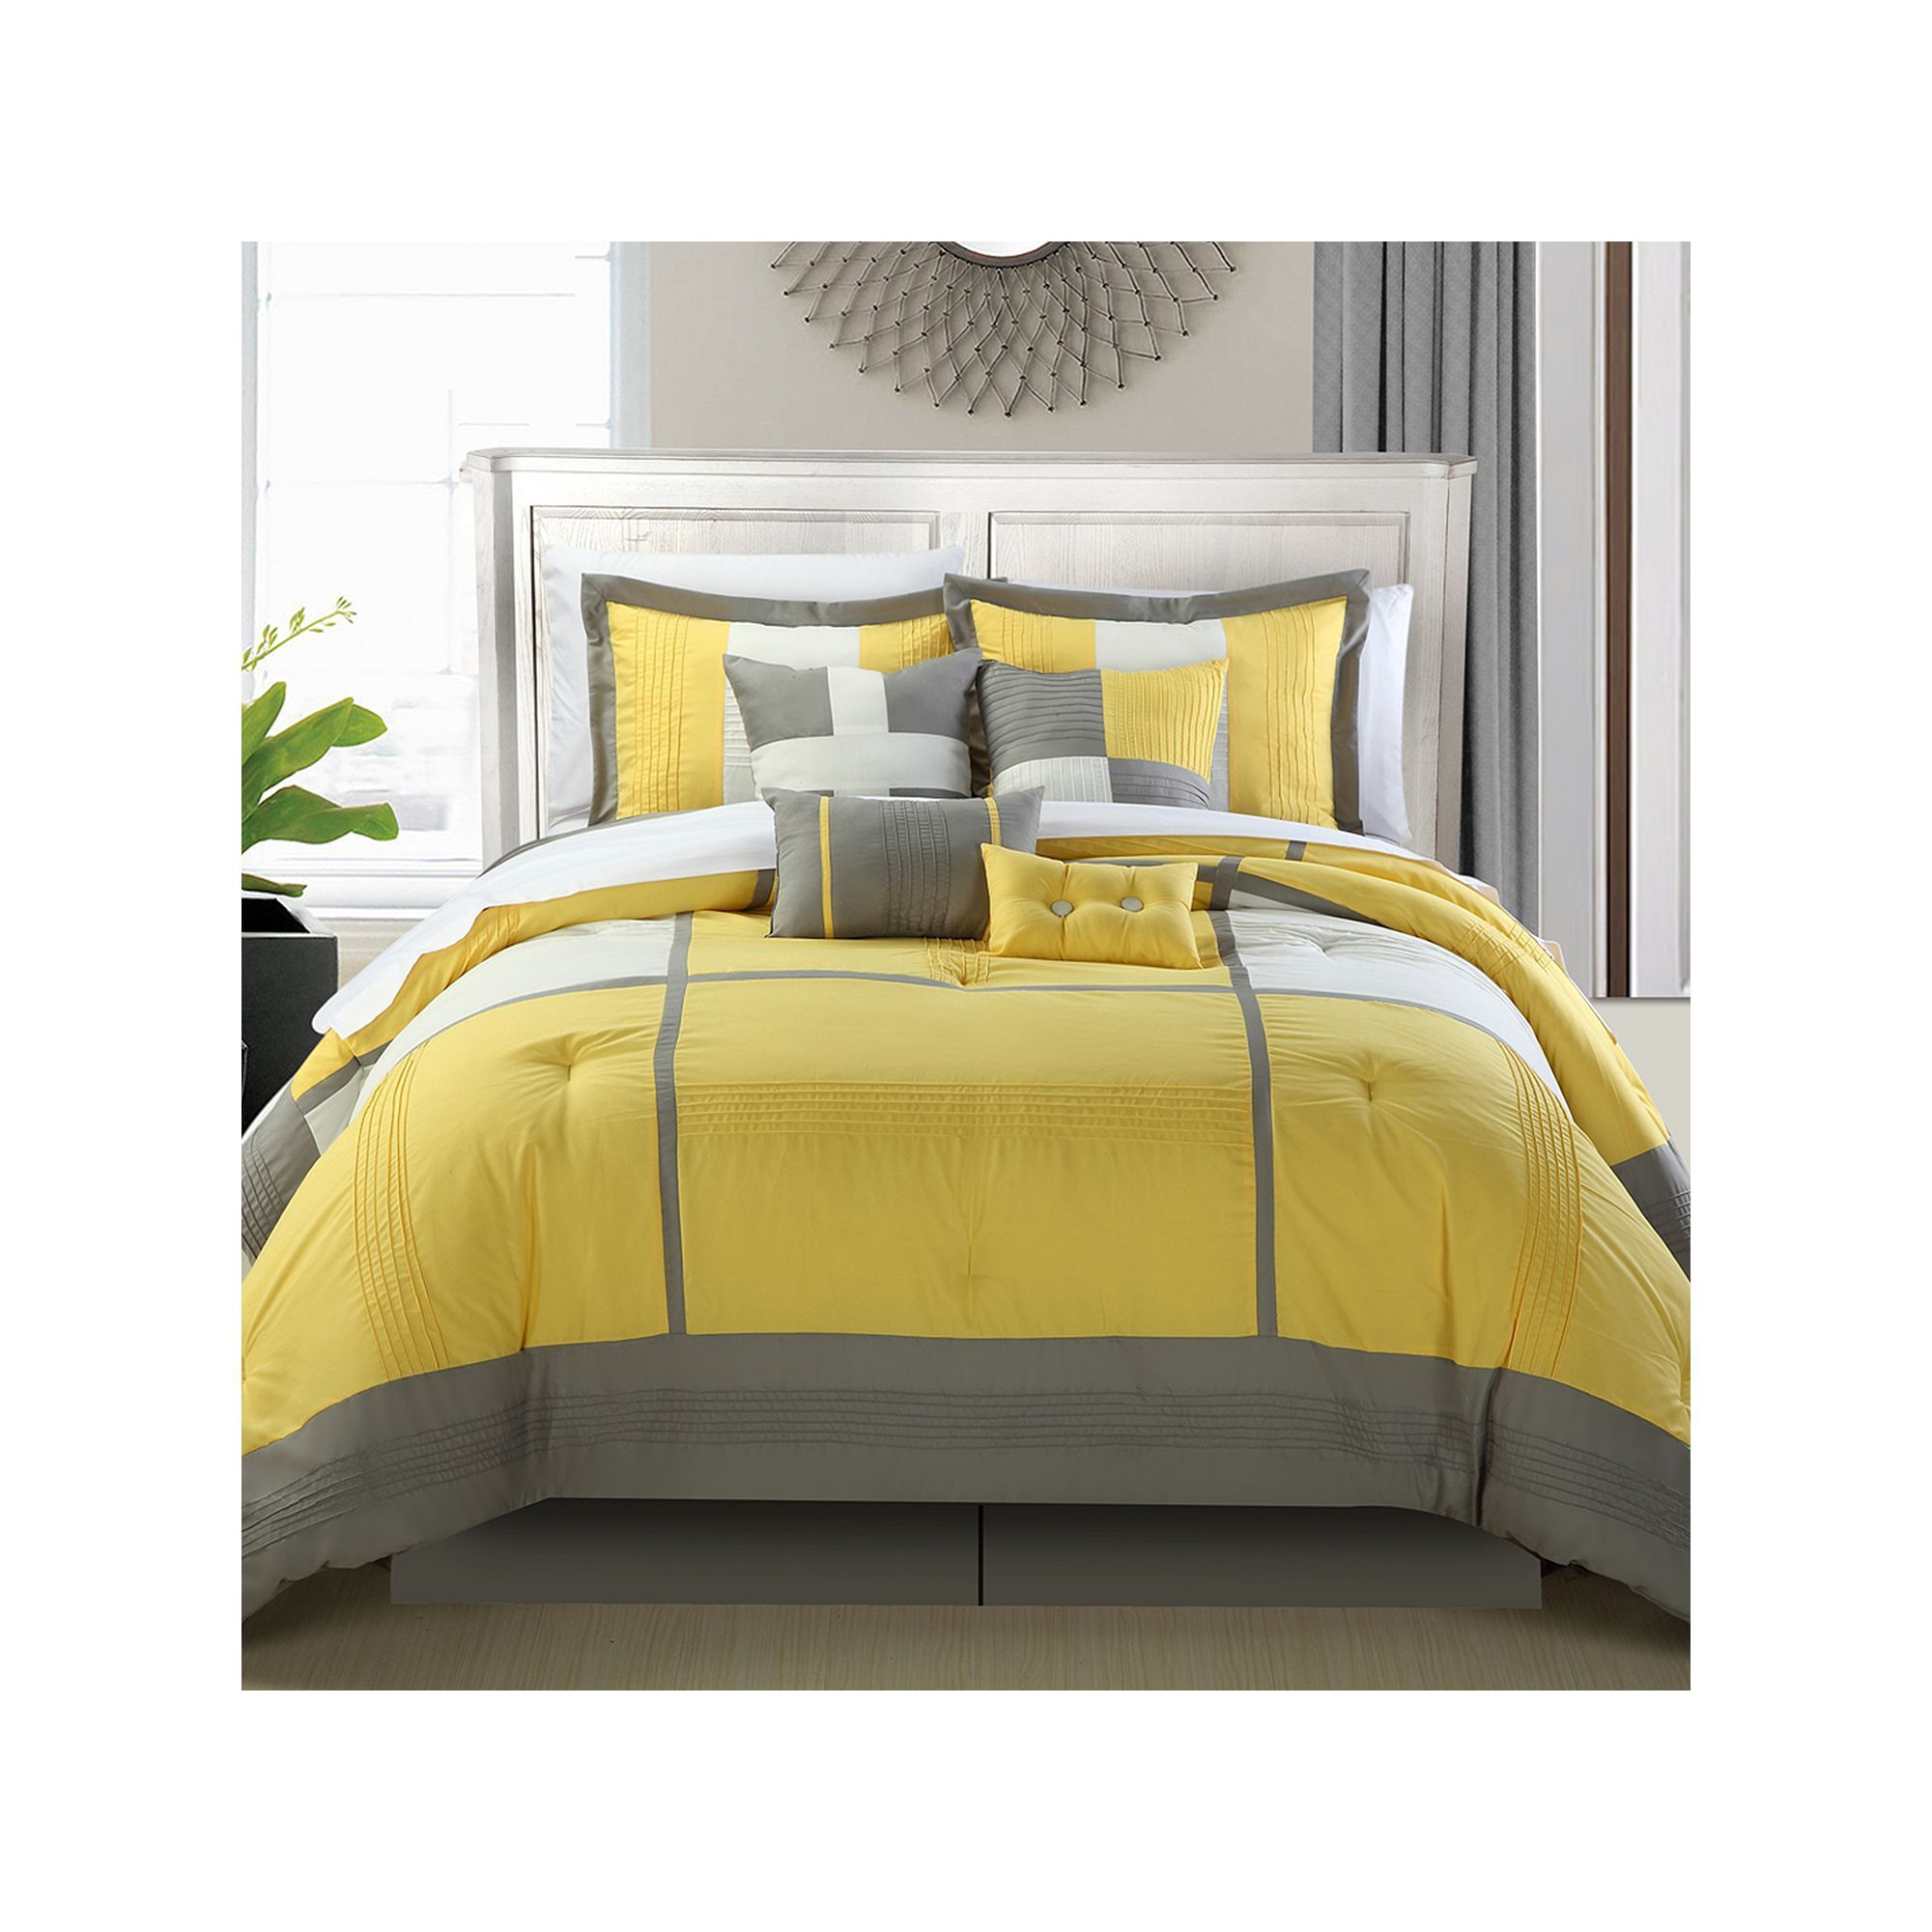 size bedroom sets comforter on queen large king set with fabulous sale for bed